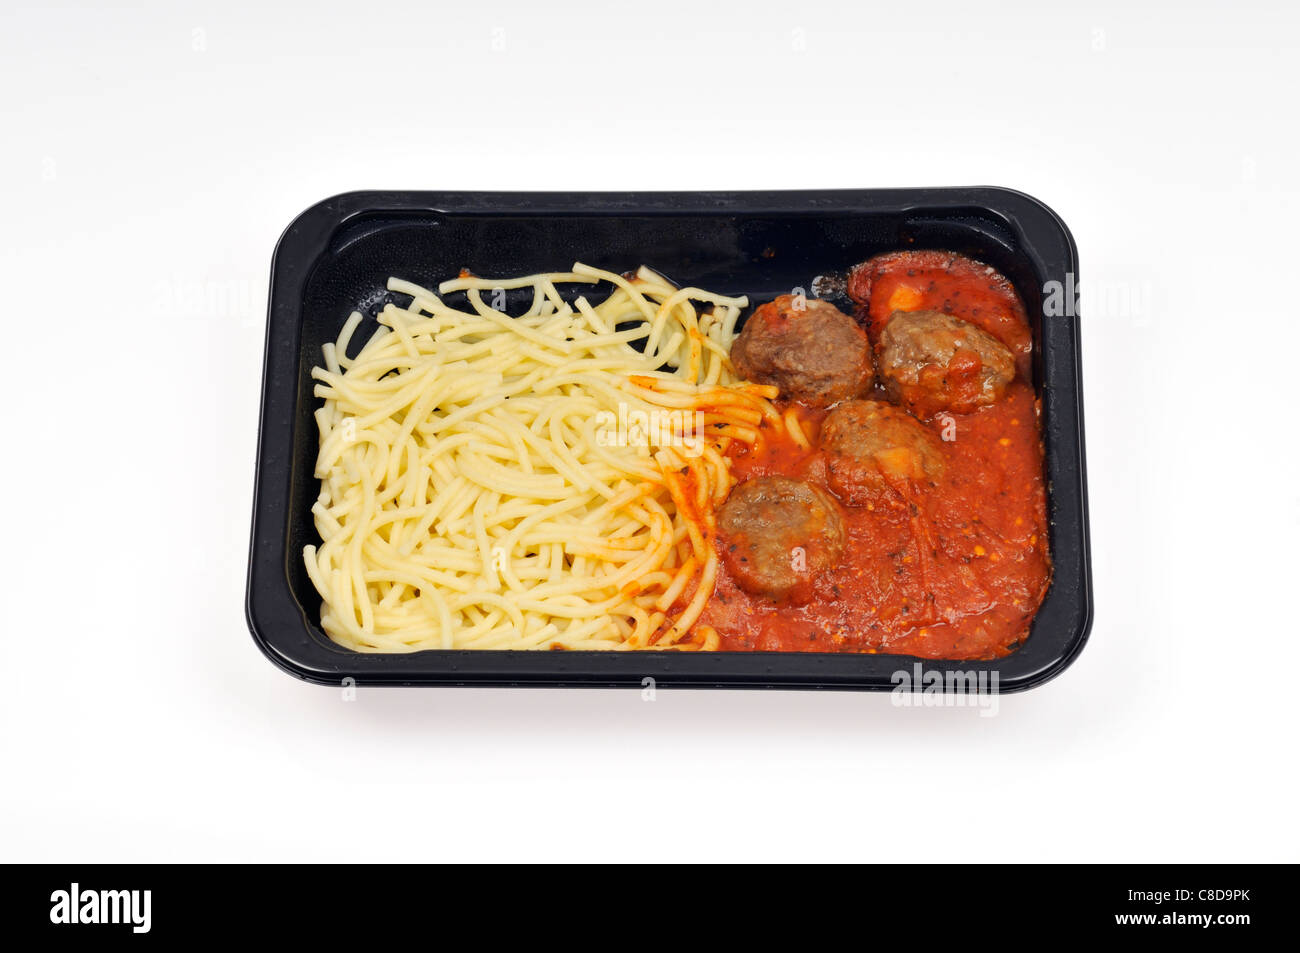 Tray of spaghetti with tomato sauce and meatballs ready meal. - Stock Image